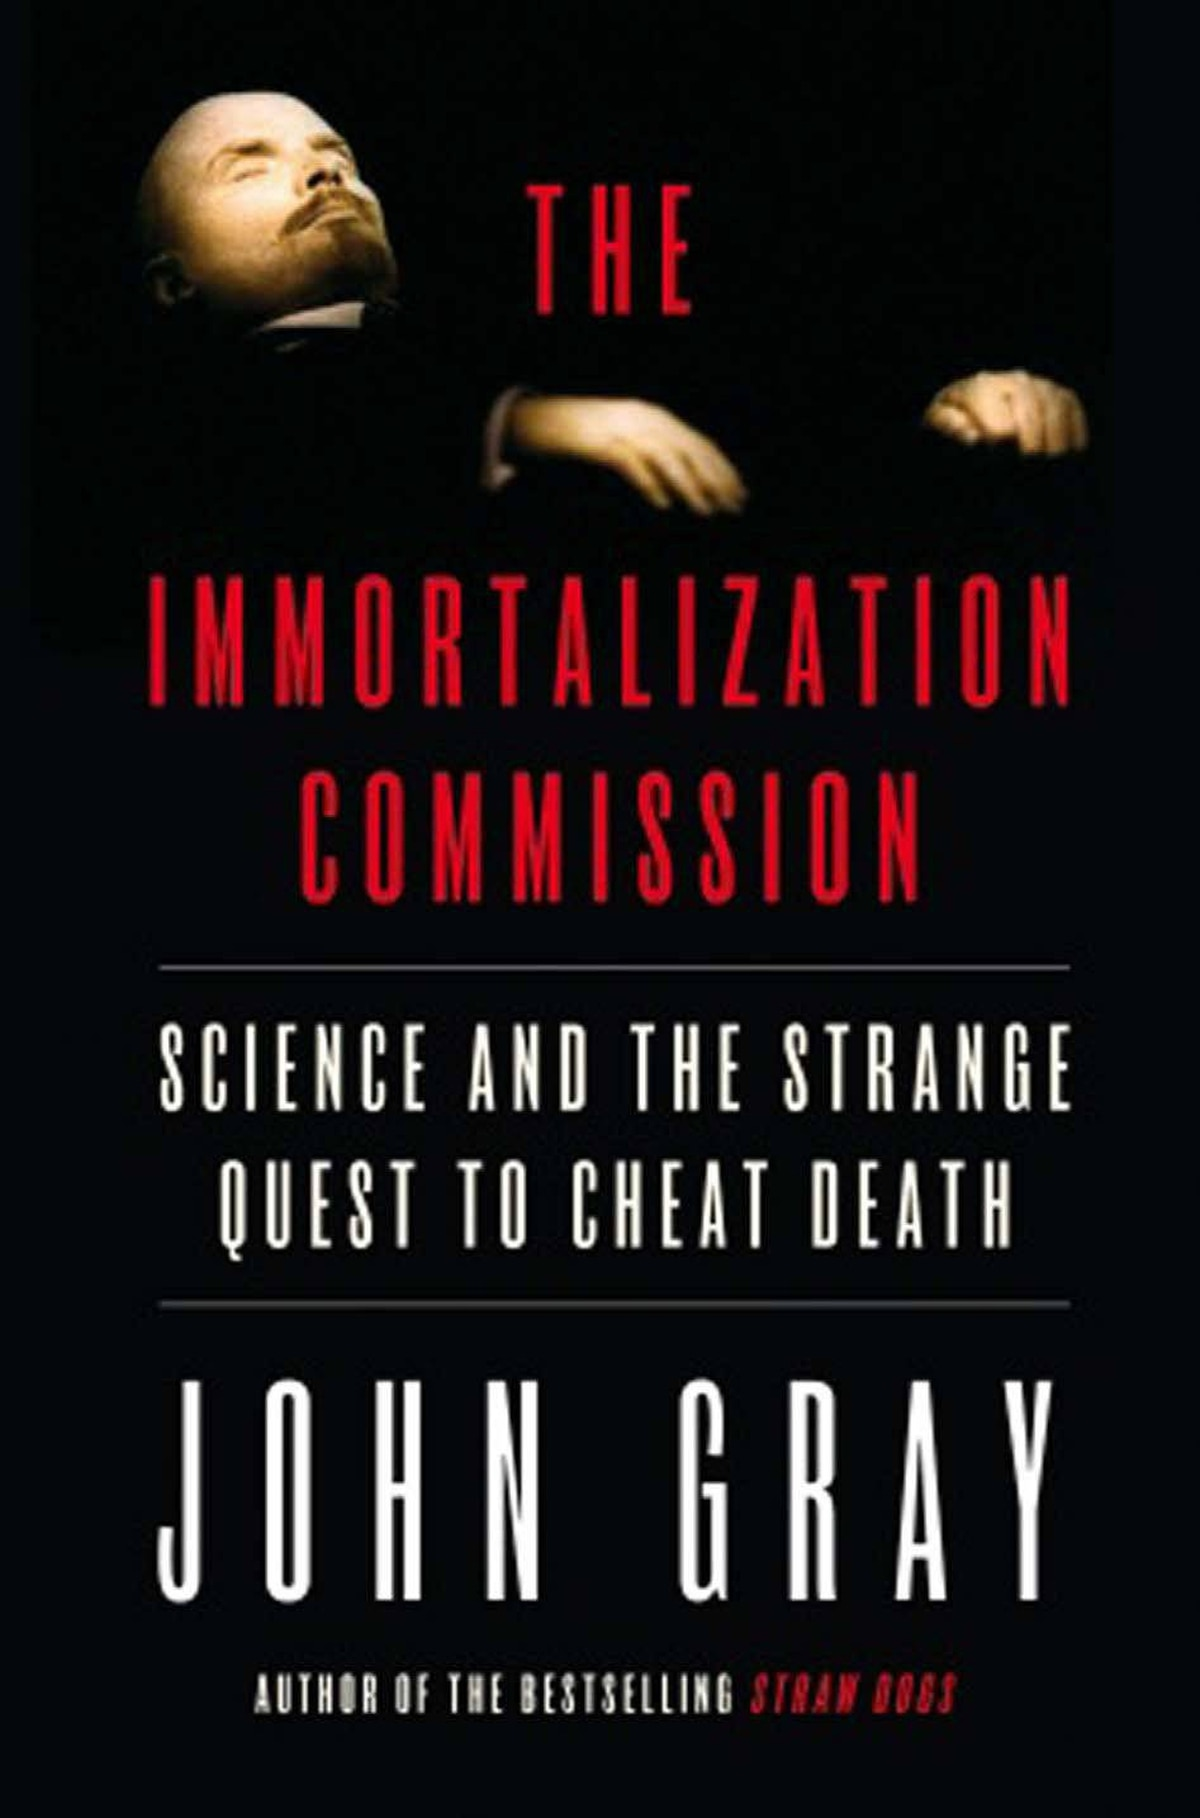 "THE IMMORTALIZATION COMMISSION Science and the Strange Quest to Cheat Death By John Gray (Doubleday Canada) Gray's focus is the revolt against death after Darwin, ""claiming that science could give humanity what religion and magic had promised – immortal life."" As always, Gray is about separating reality from delusion – brilliantly. The astuteness of his thinking, the connections he makes between a wide range of subjects and the clarity of his conclusions make this book extremely satisfying. – M.A.C. Farrant"